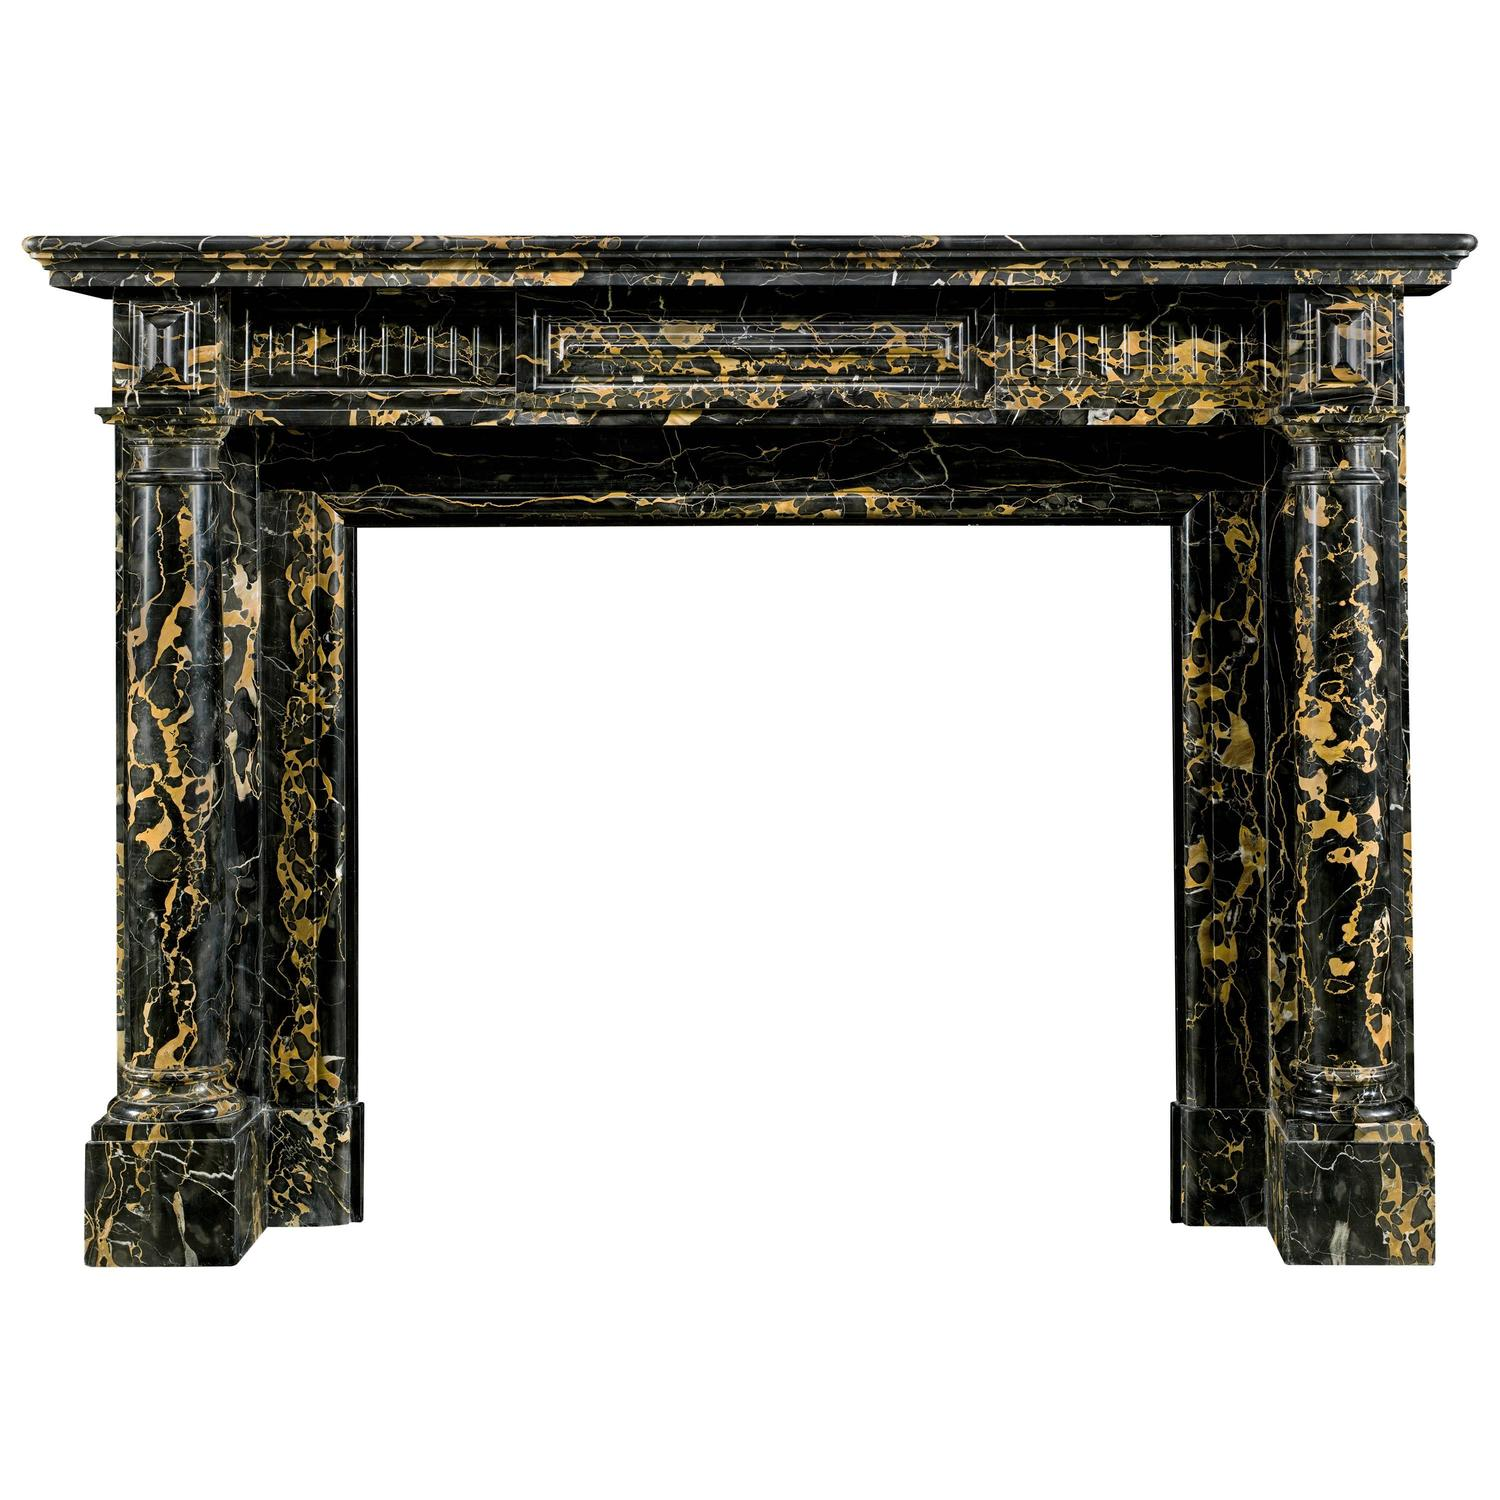 antique irish kilkenny marble fireplace mantel for sale at 1stdibs